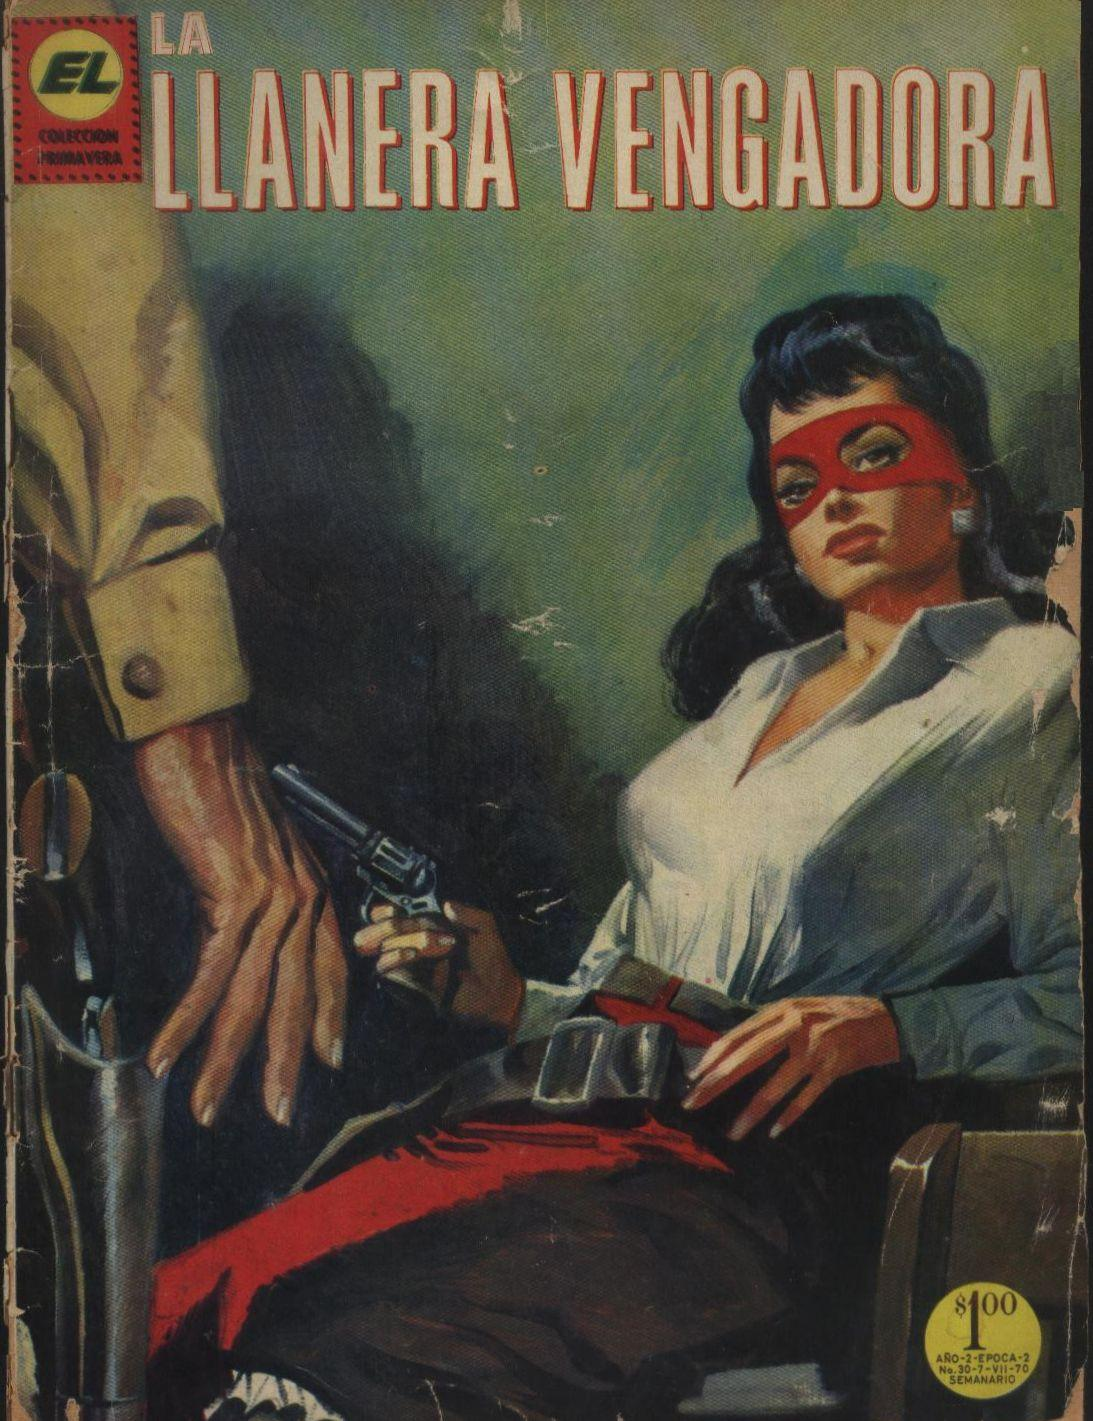 Comic Book Cover For Llanera Vengadora, La 030